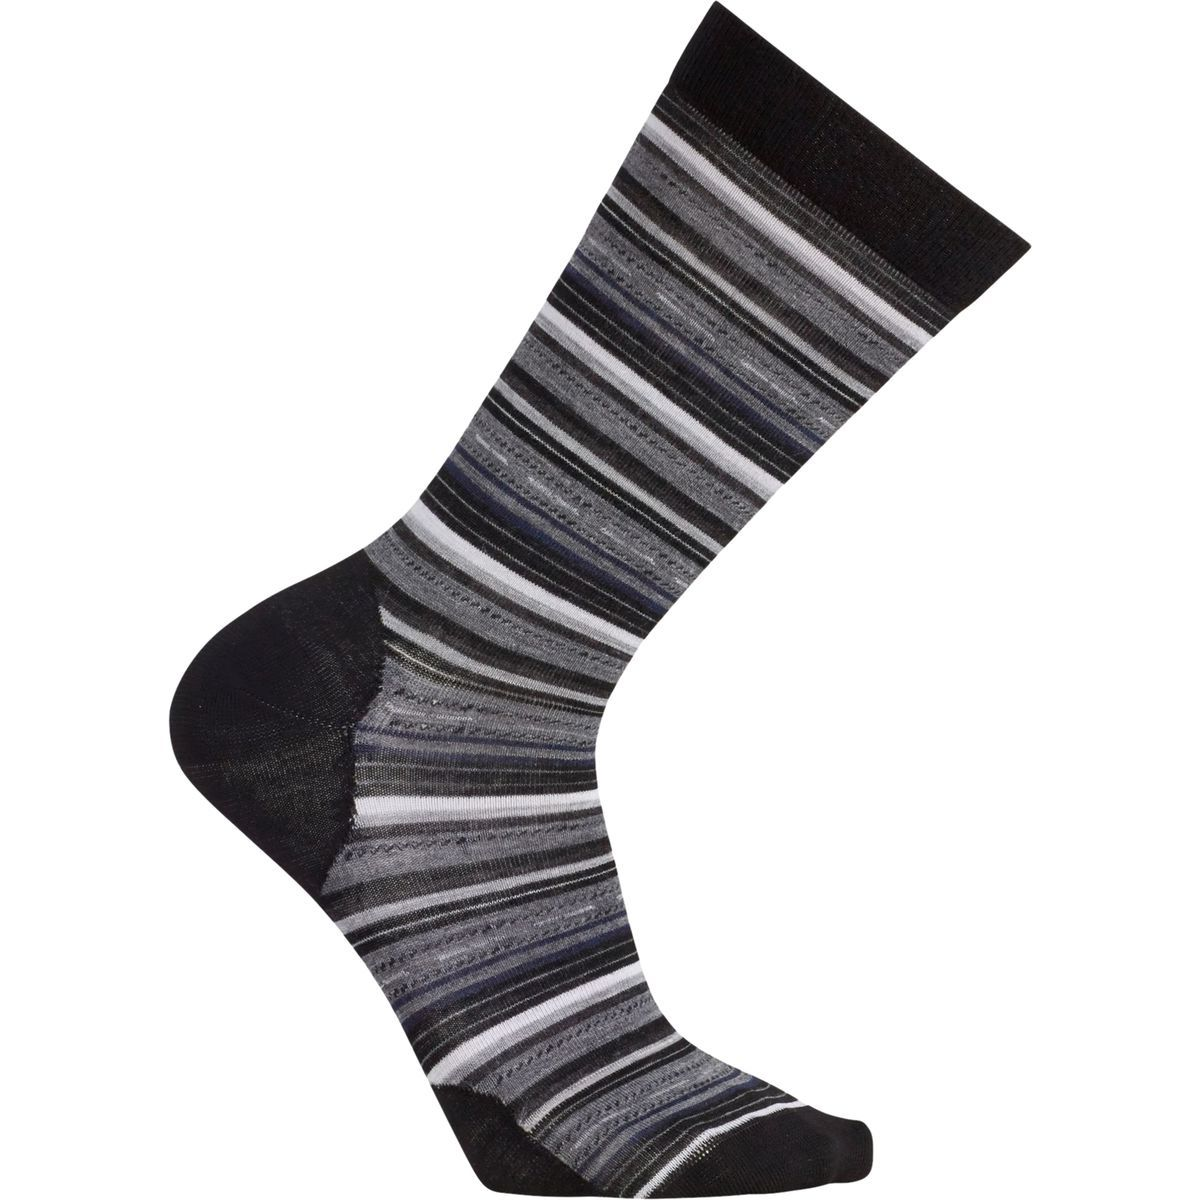 Smartwool Men's Margarita Socks